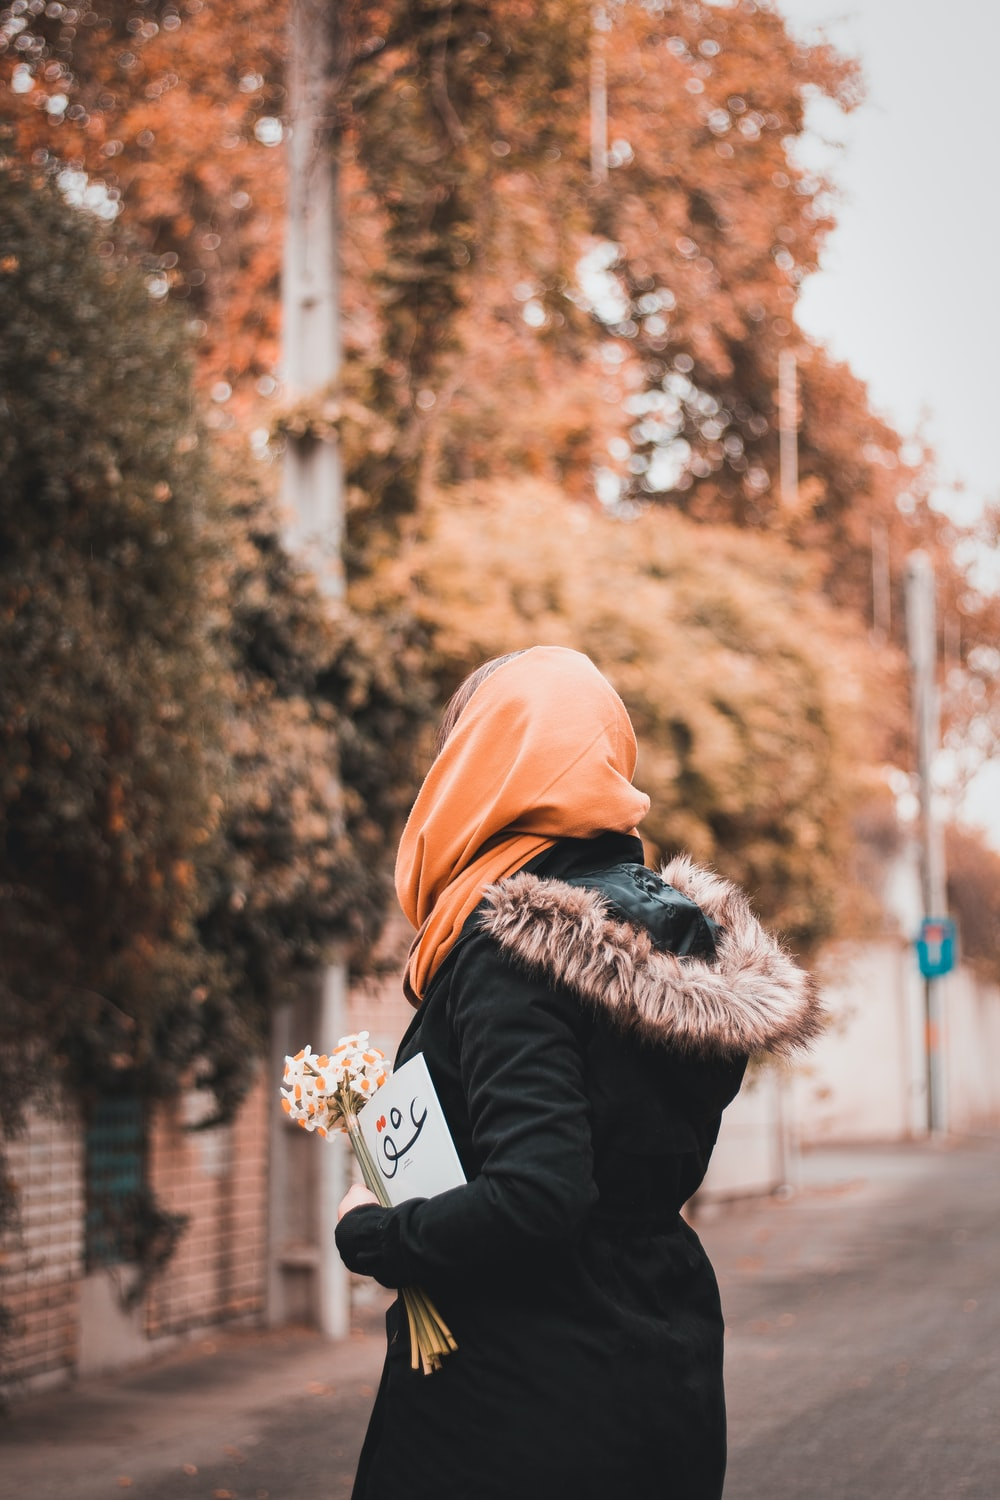 woman in black jacket and brown knit cap carrying baby in black jacket